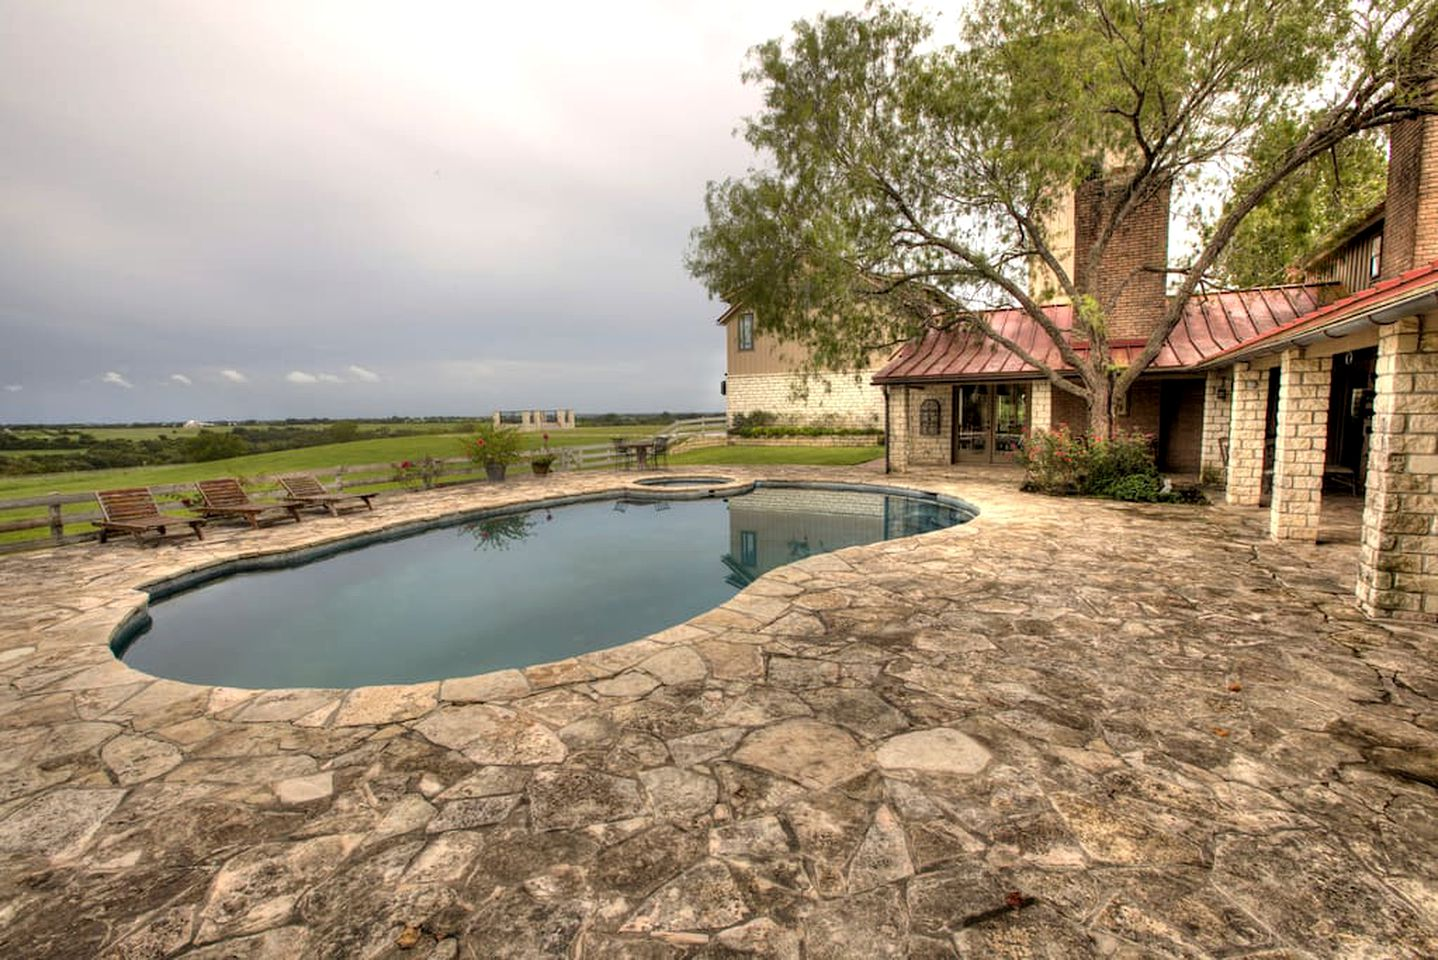 Luxury villa rental with private pool and stone patio on a ranch near Austin, TX.